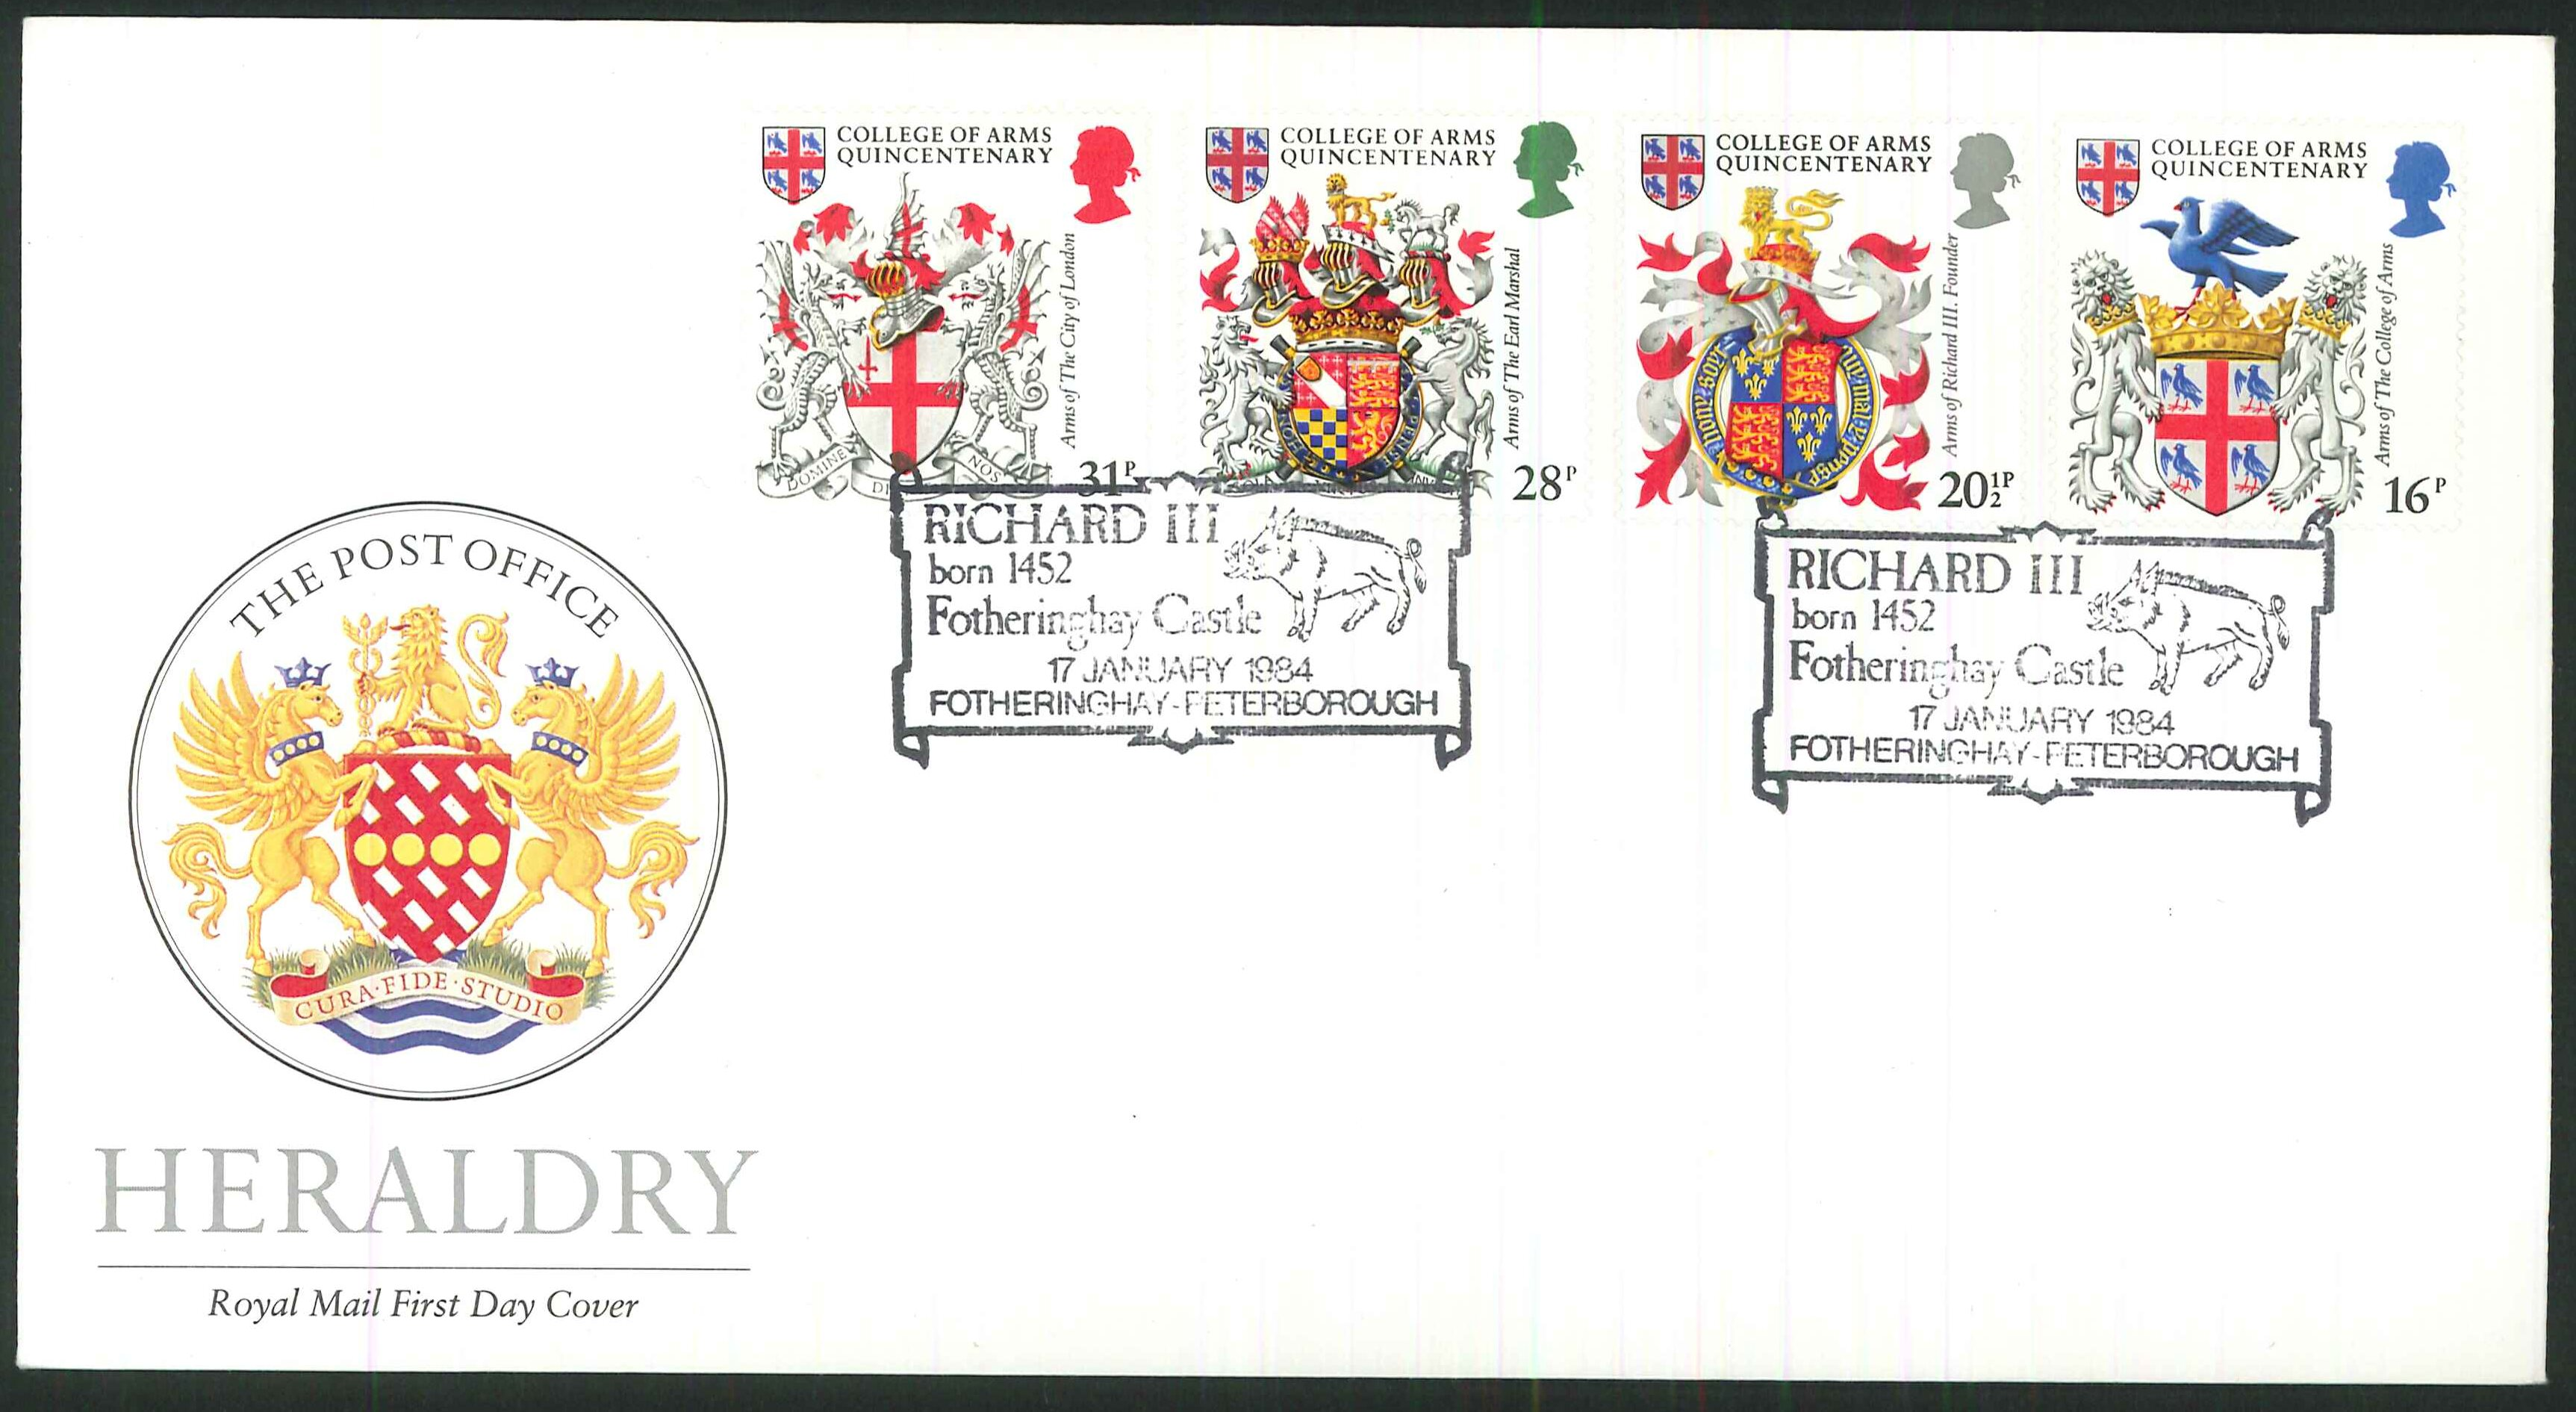 1984 - Heraldry, First Day Cover , Fotheringhay, Peterborough Postmark